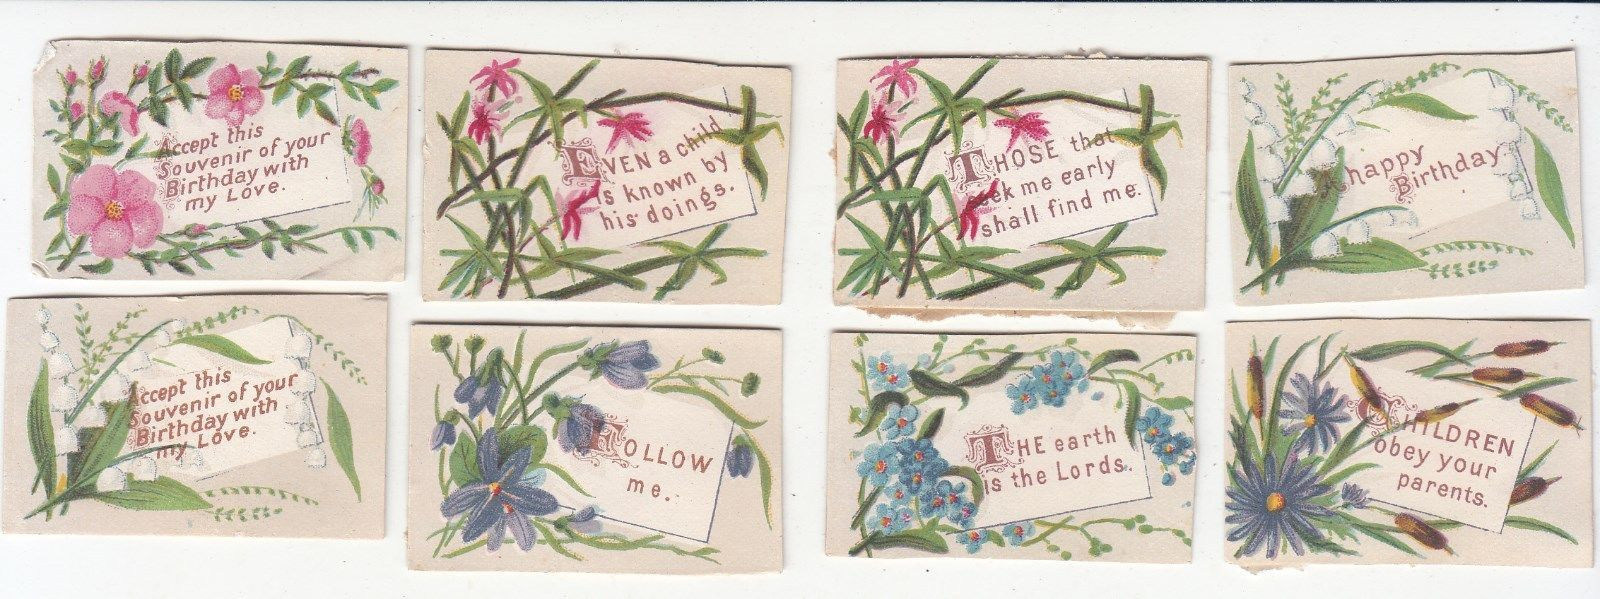 8 Mini Cards With Sayings Greetings Religious Victorian Cards C